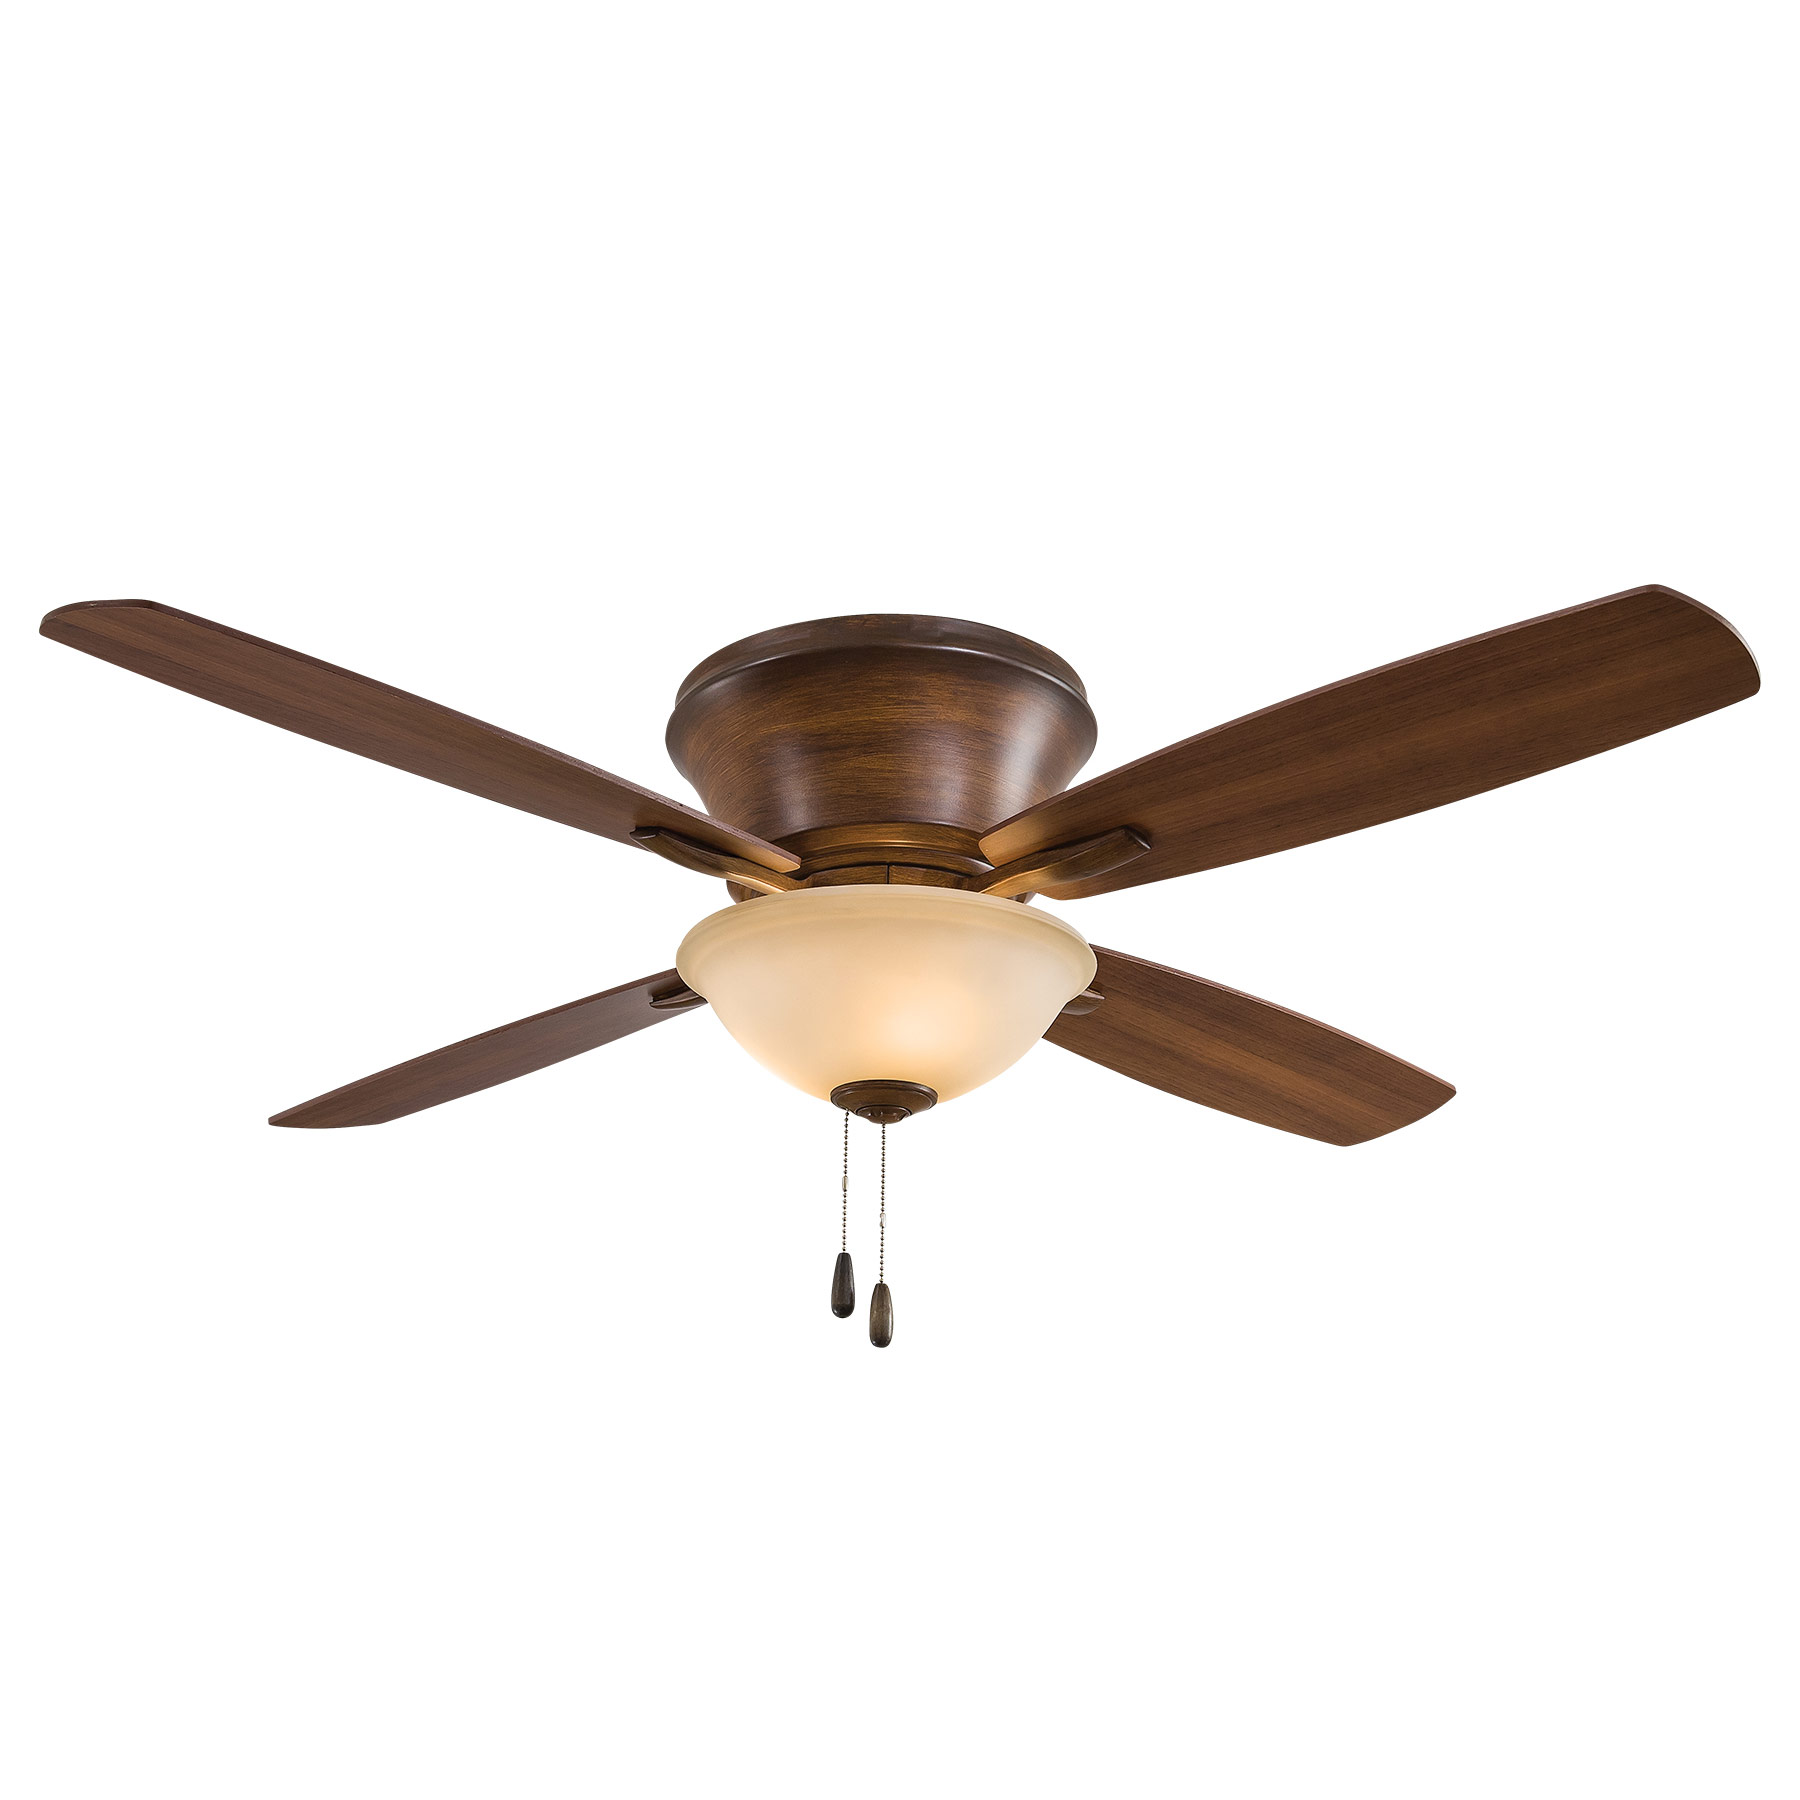 Rustic Ceiling Fans Without Lights All Images Montecarlo